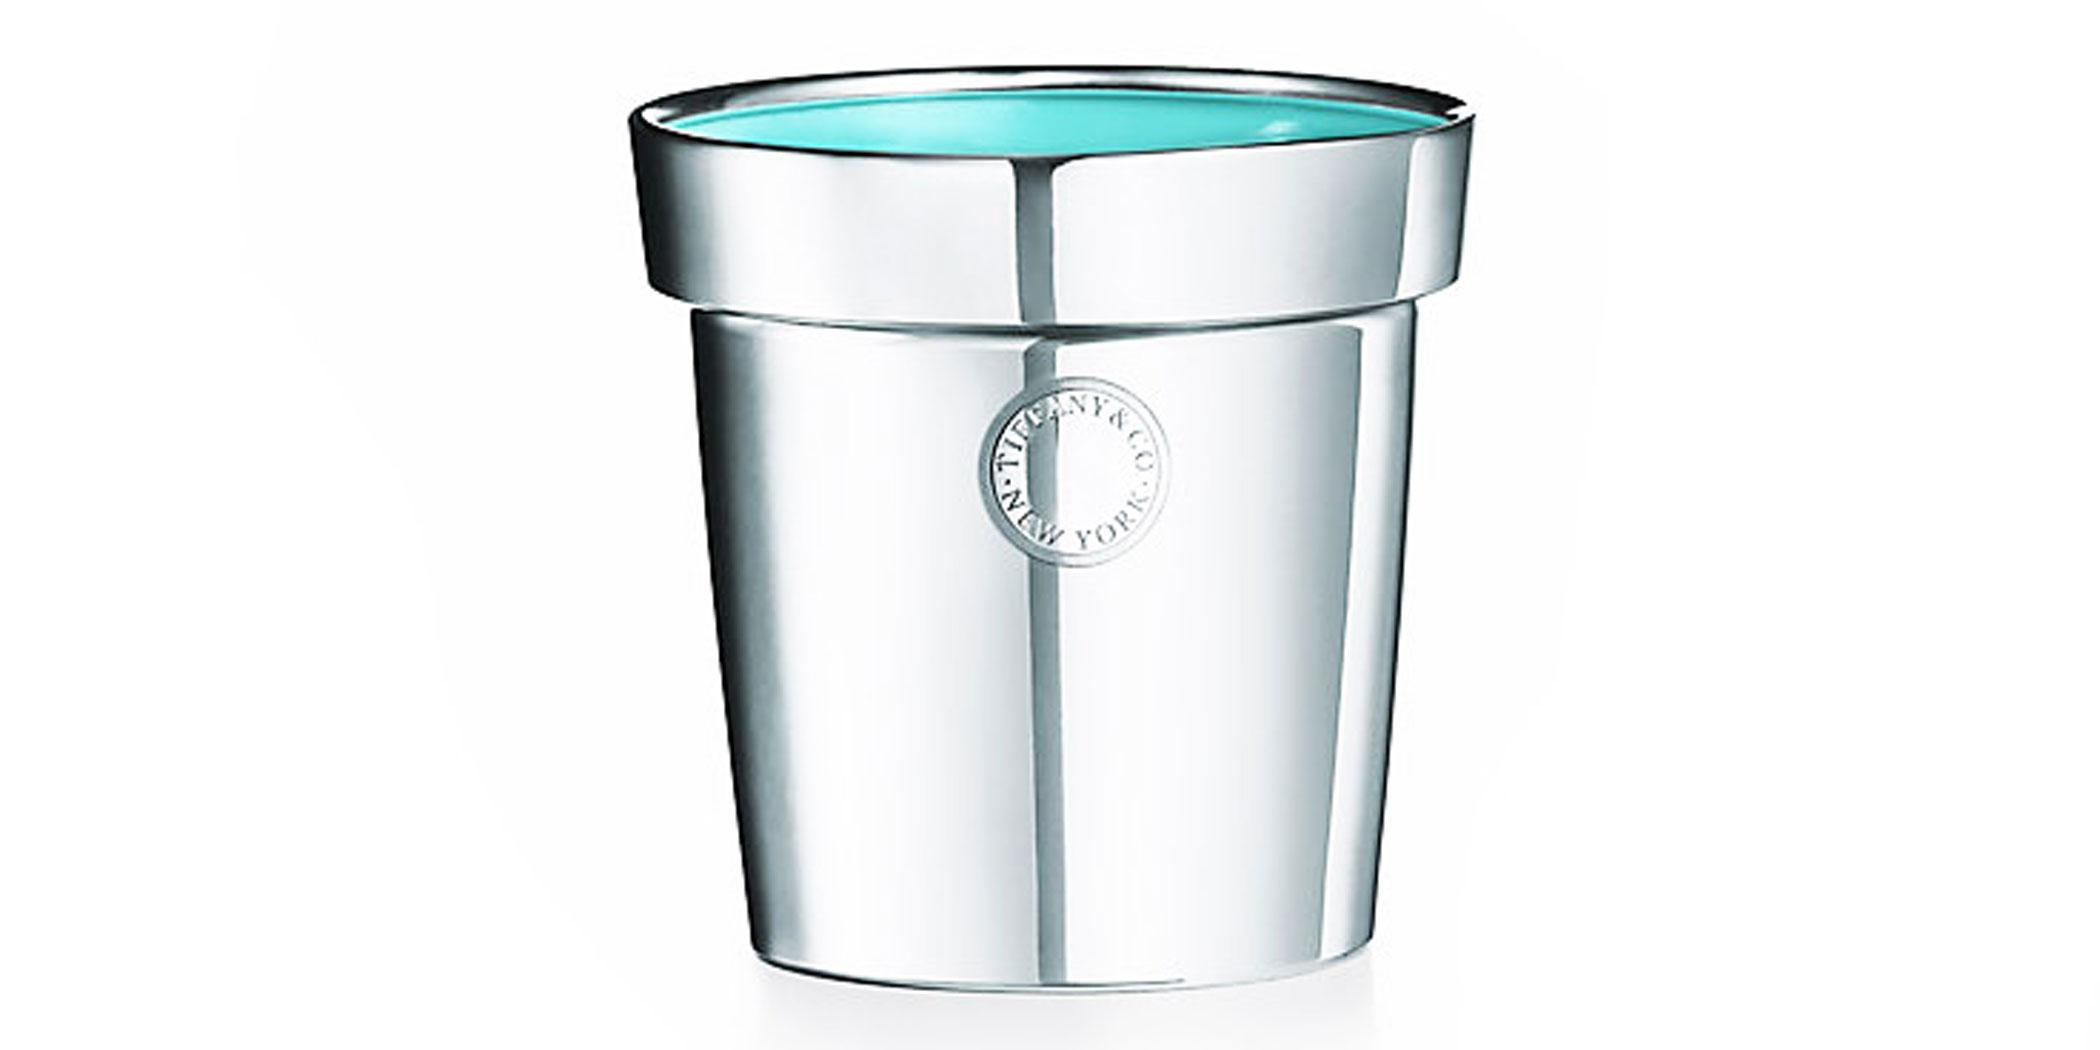 This sterling silver flowerpot from Tiffany